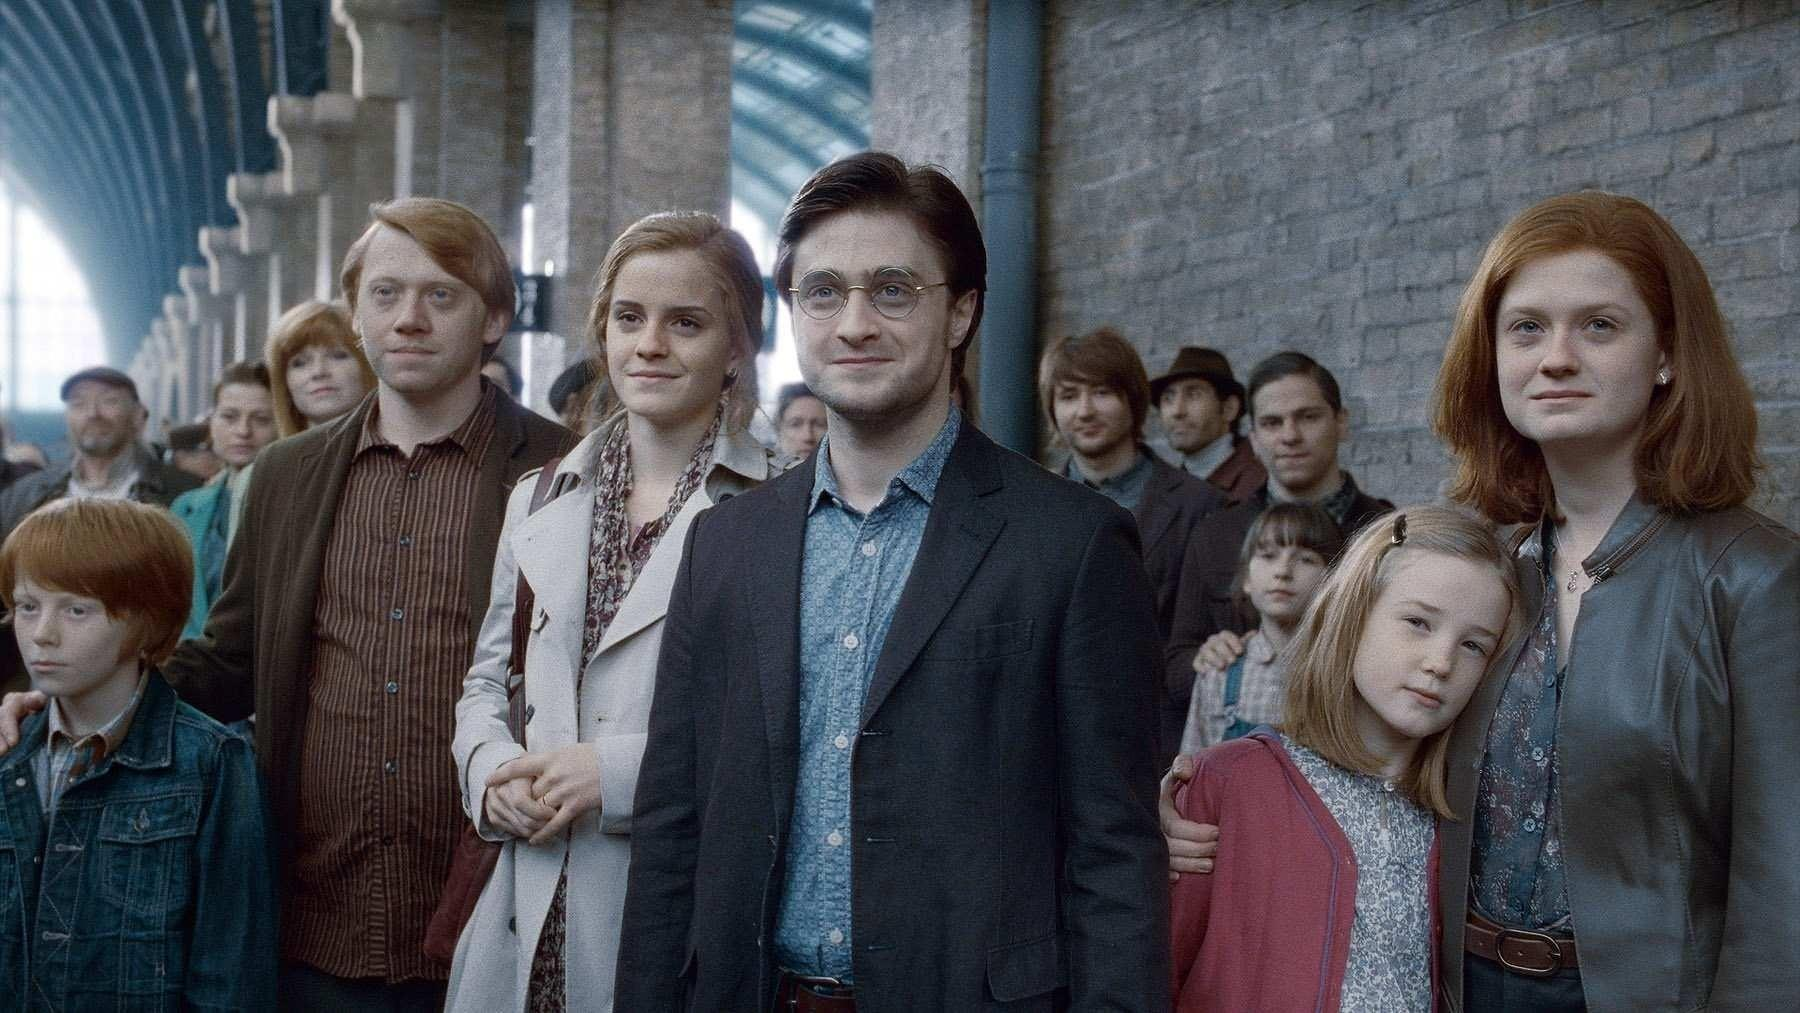 """(L-R) Rupert Grint as Ron Weasley, Emma Watson as Hermione Granger, Daniel Radcliffe as Harry Potter and Bonnie Wright as Ginny Weasley in a scene from """"Harry Potter and the Deathly Hallows - Part 2,"""" depicting the characters as adults with children of their own."""